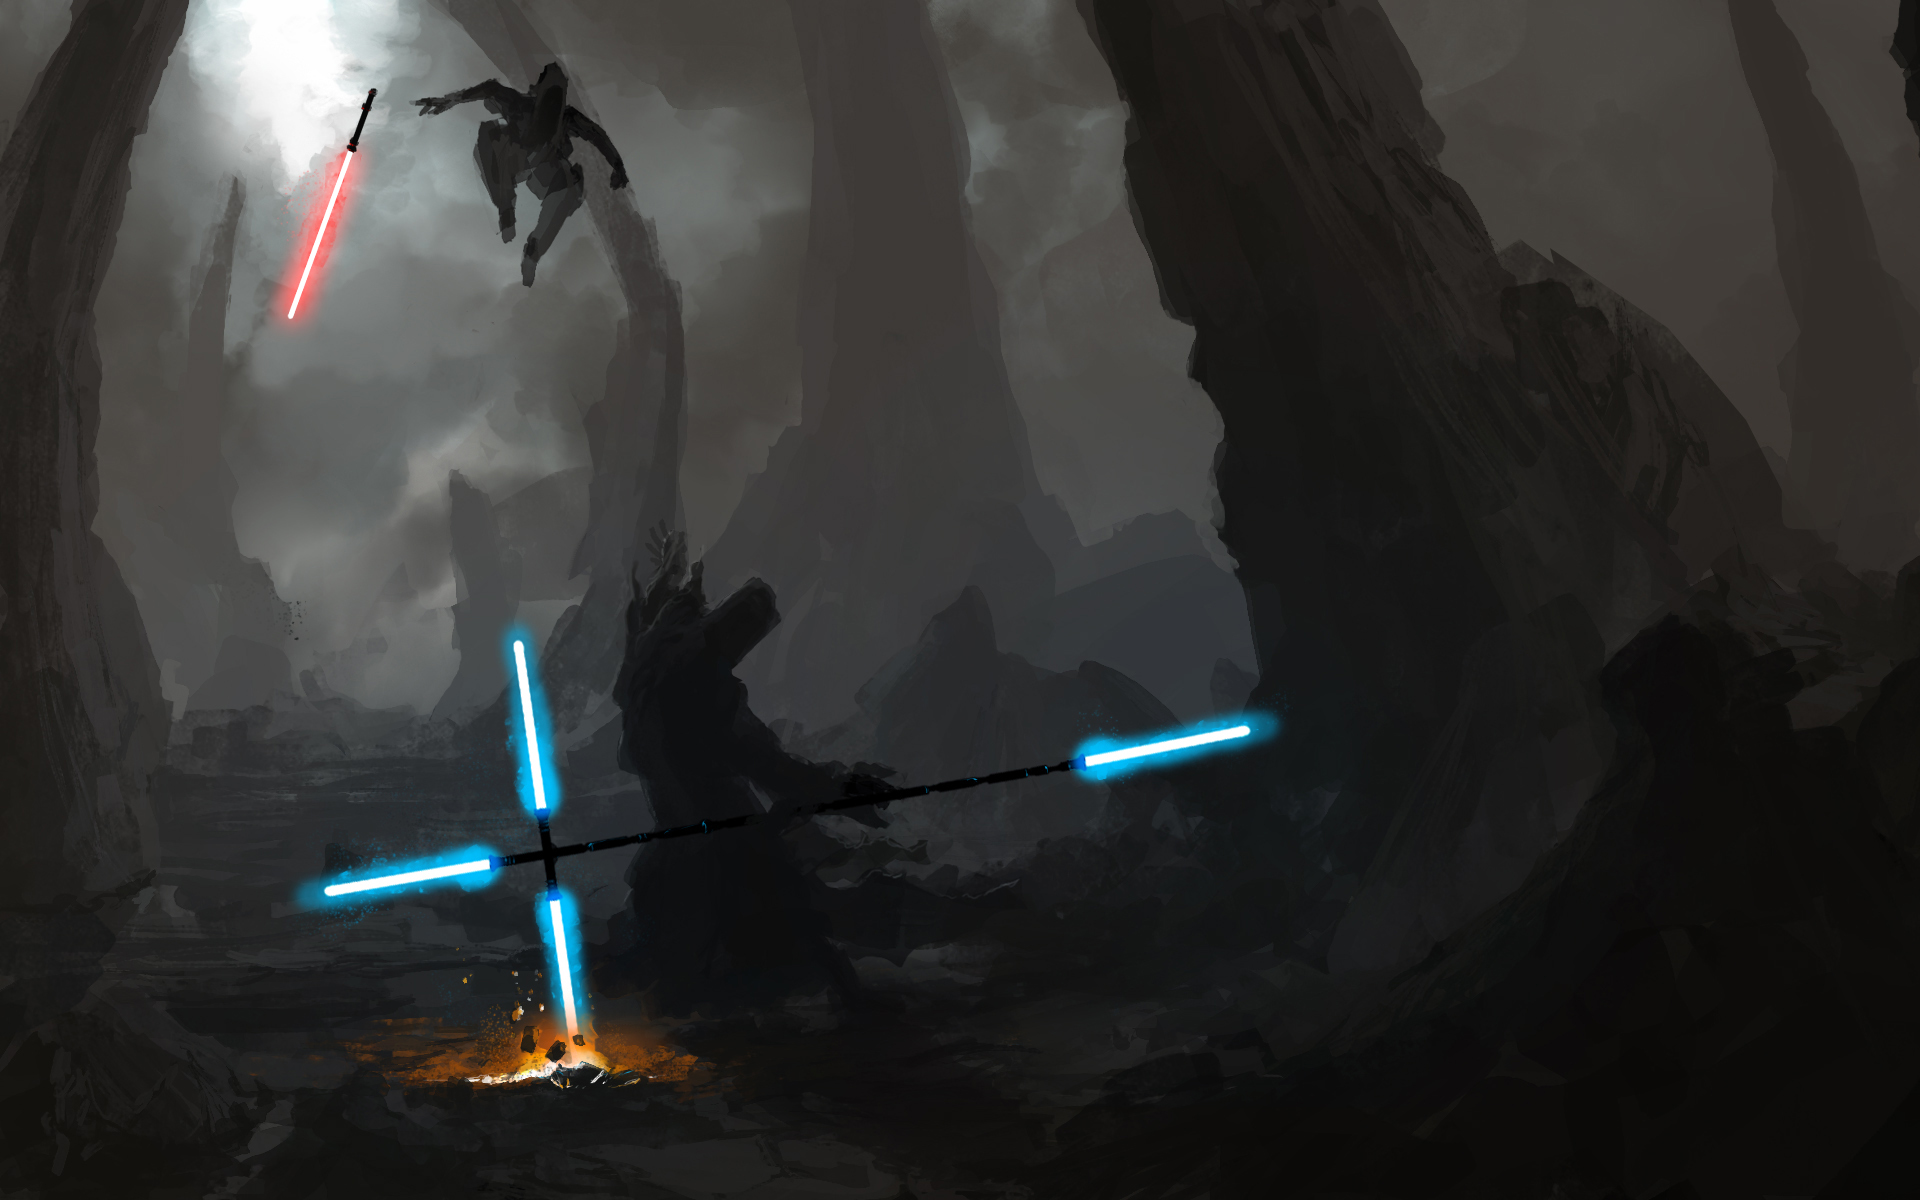 star wars energy duel HD Wallpaper